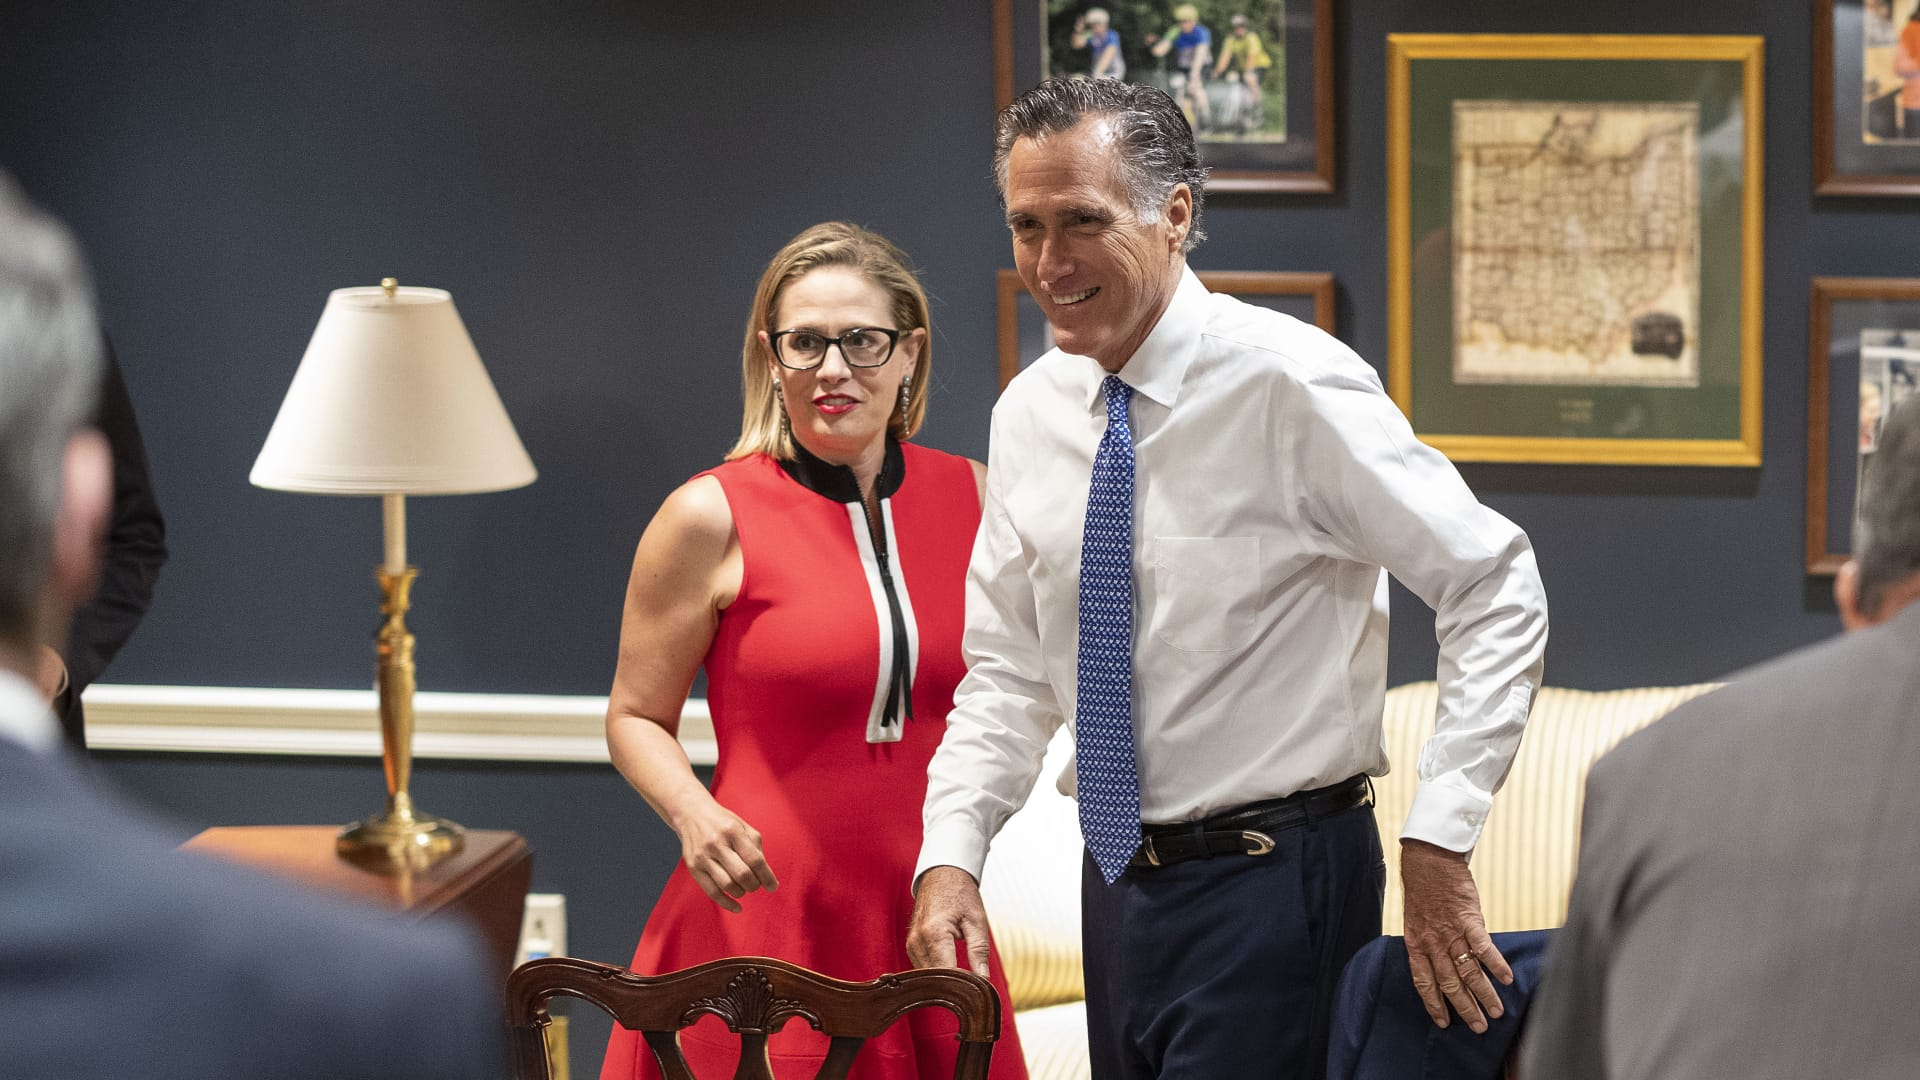 U.S. Sens. Kyrsten Sinema (D-AZ) (L) and Mitt Romney (R-UT) arrive for a bipartisan meeting on infrastructure after original talks fell through with the White House on June 08, 2021 in Washington, DC.